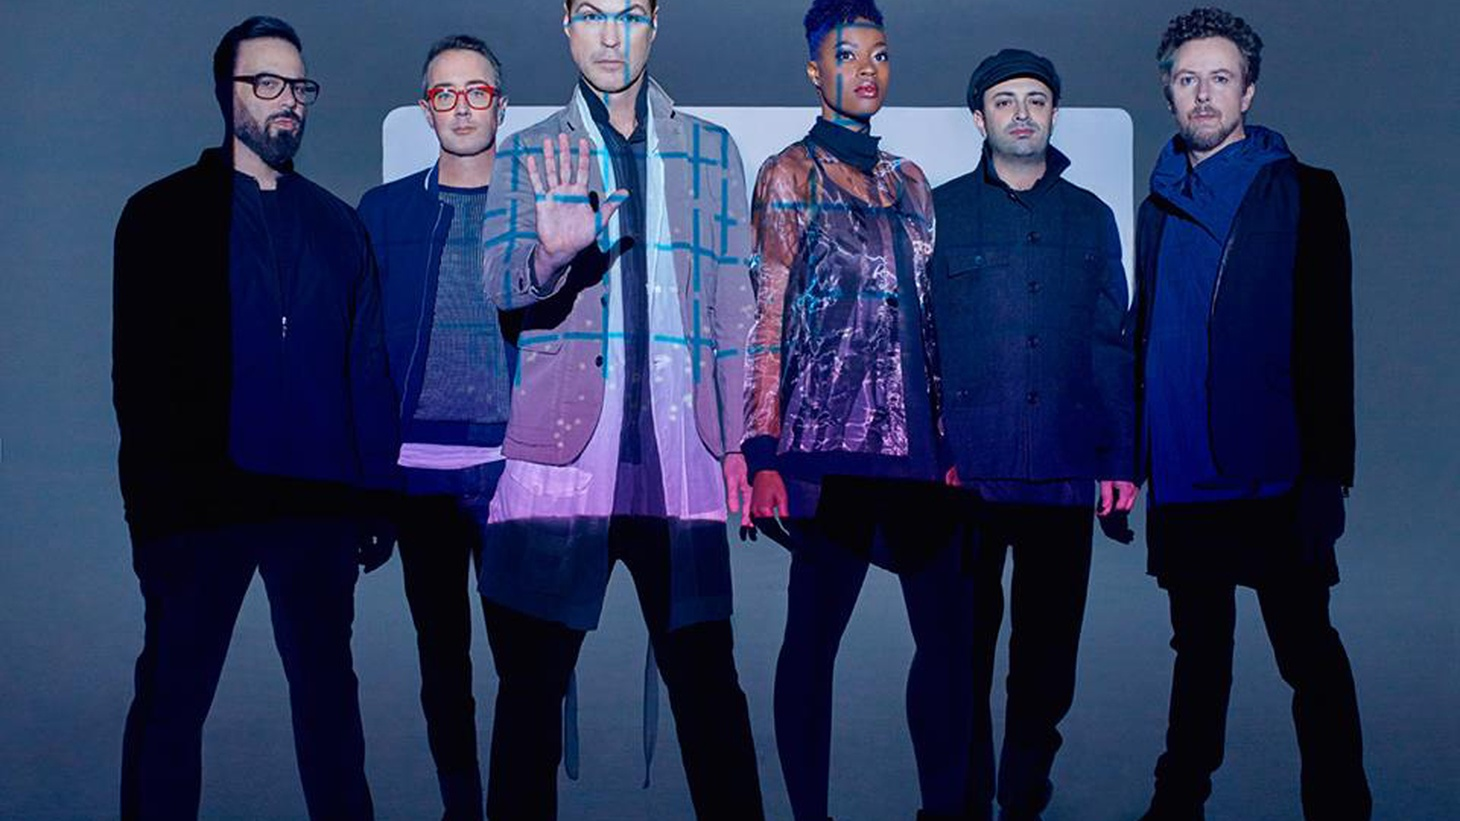 The exuberance felt at Fitz and the Tantrums shows is palpable and not an easy thing to capture.